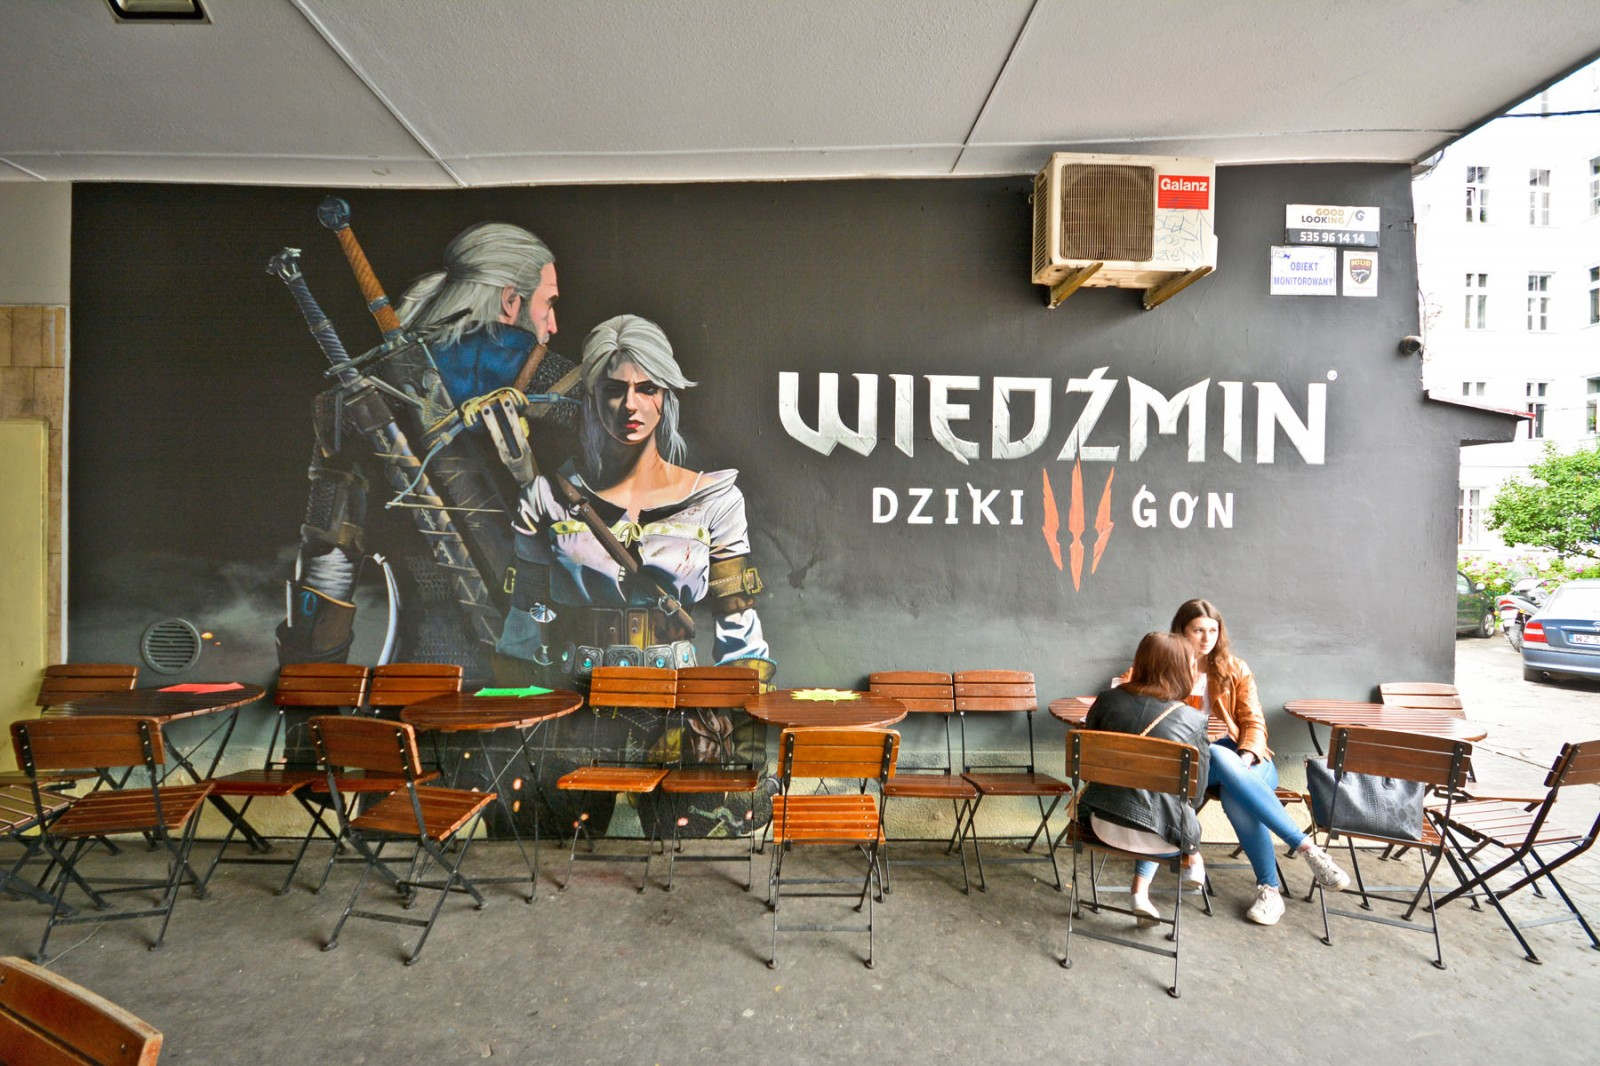 The Witcher Wild Hunt advertising mural on the pavilions wall in Warsaw | The Witcher Wild Hunt | Portfolio